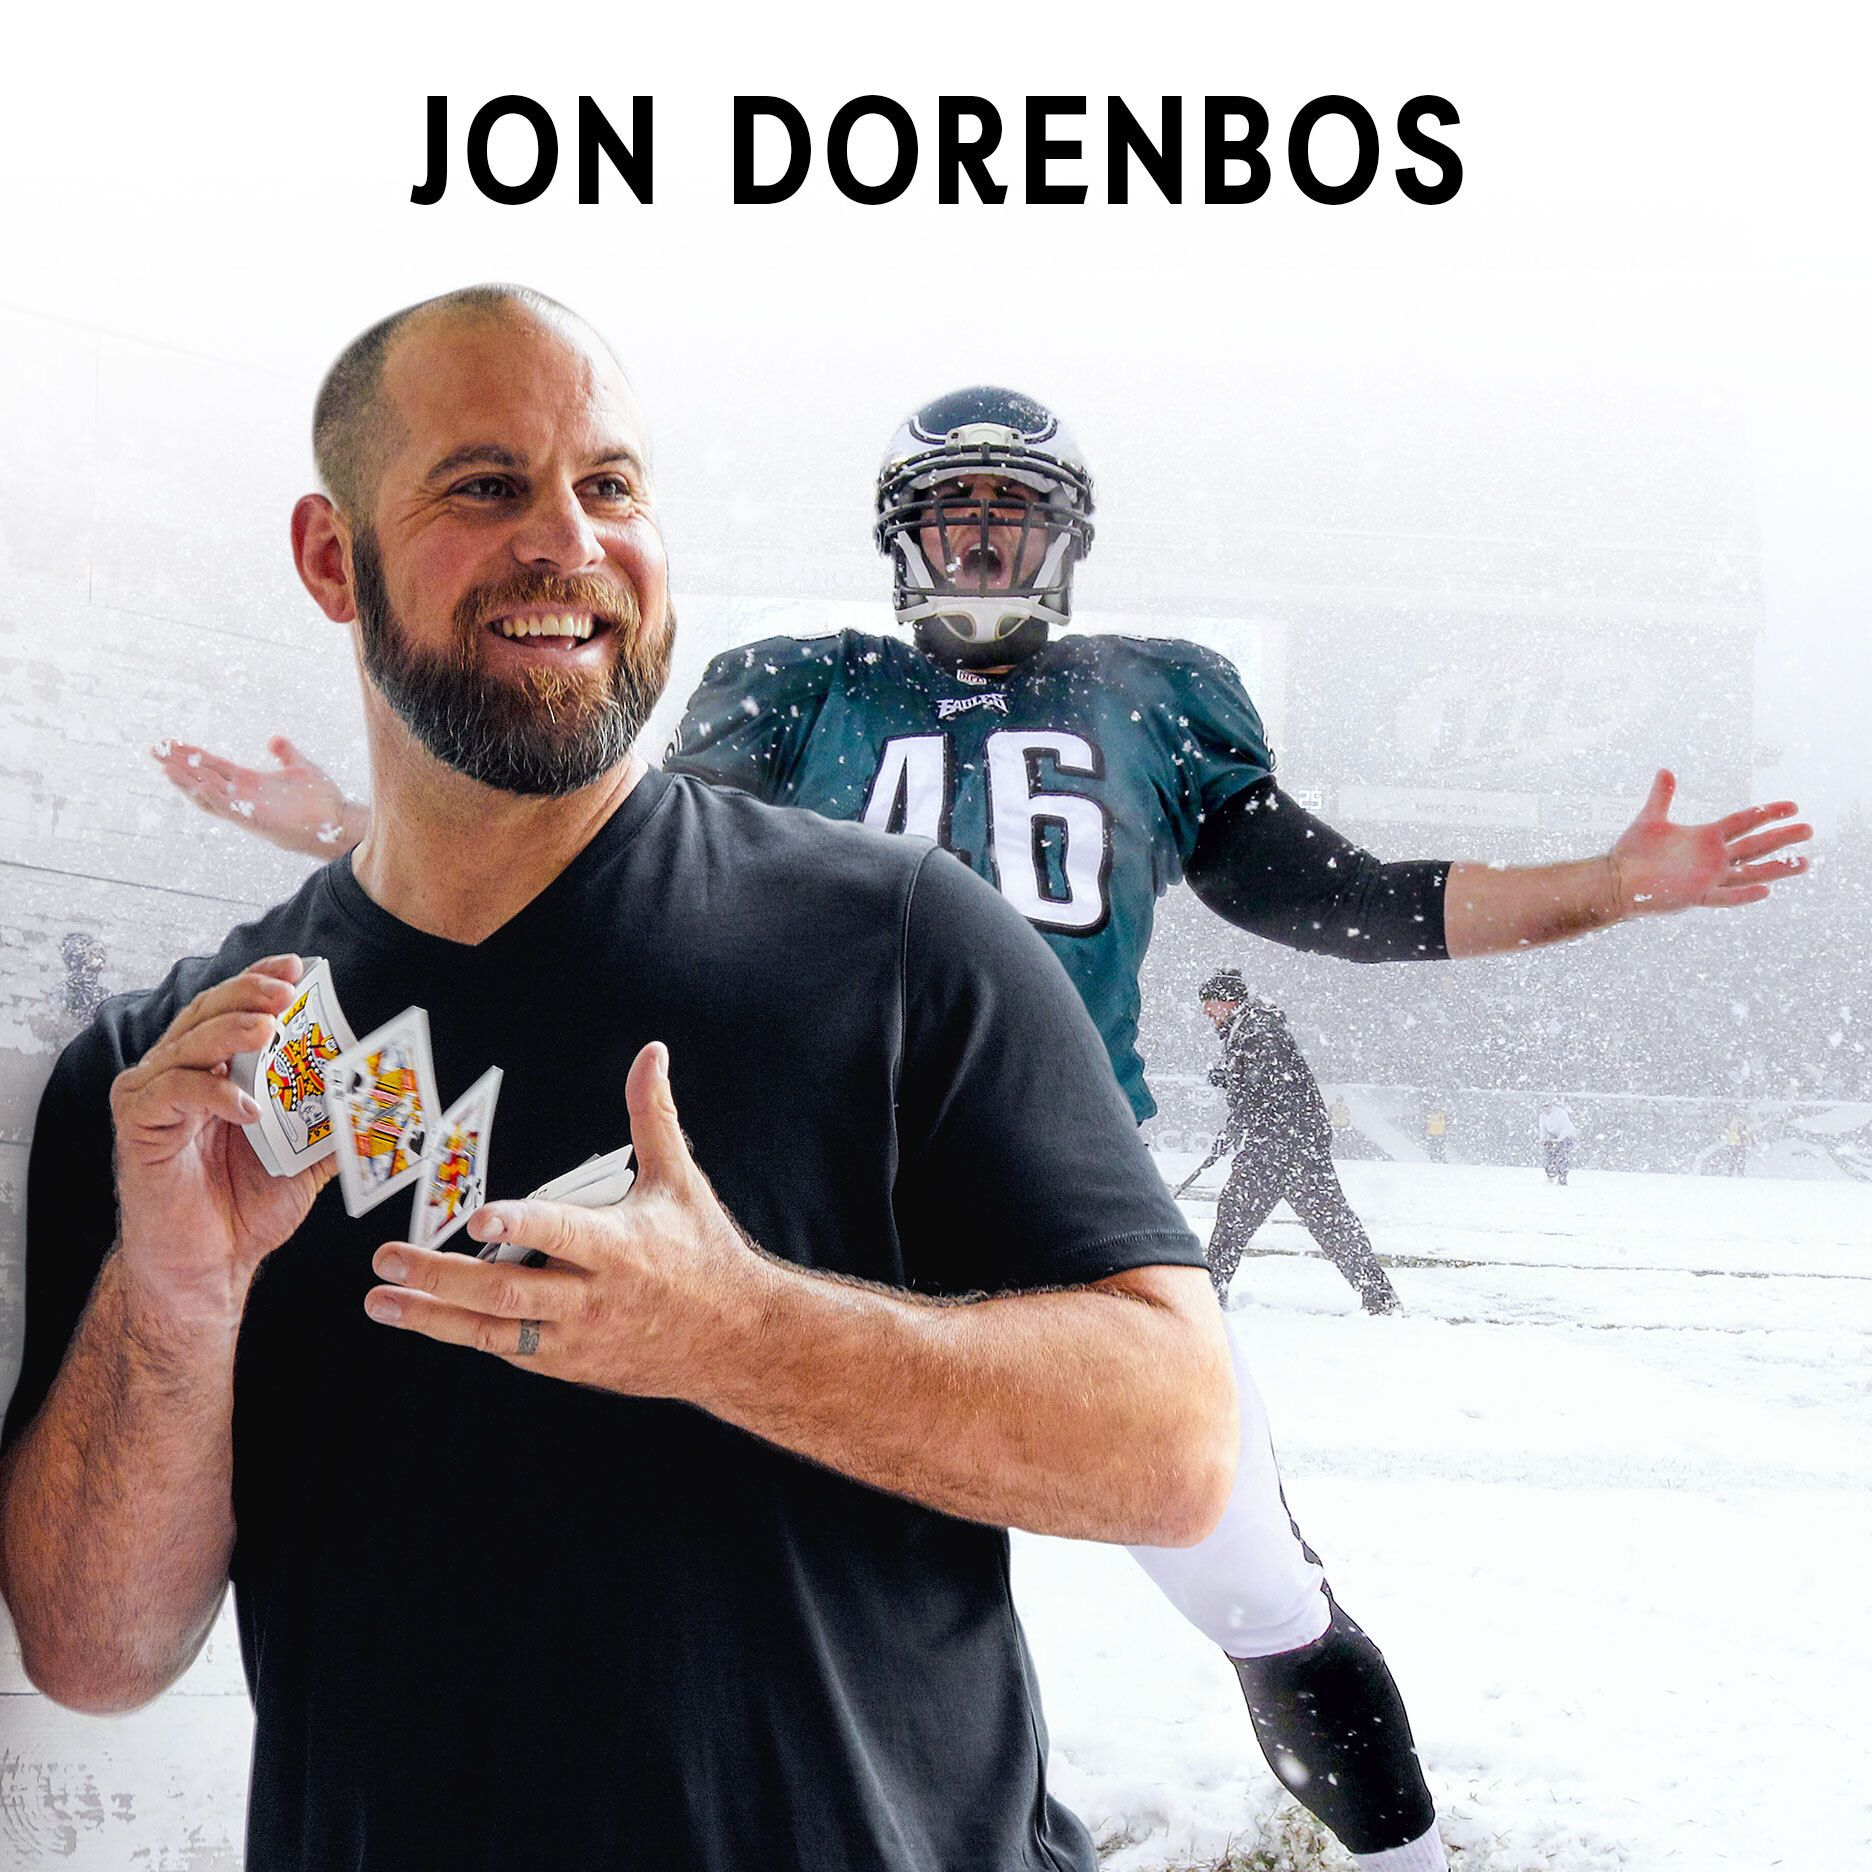 Life can change in a snap: The Jon Dorenbos story